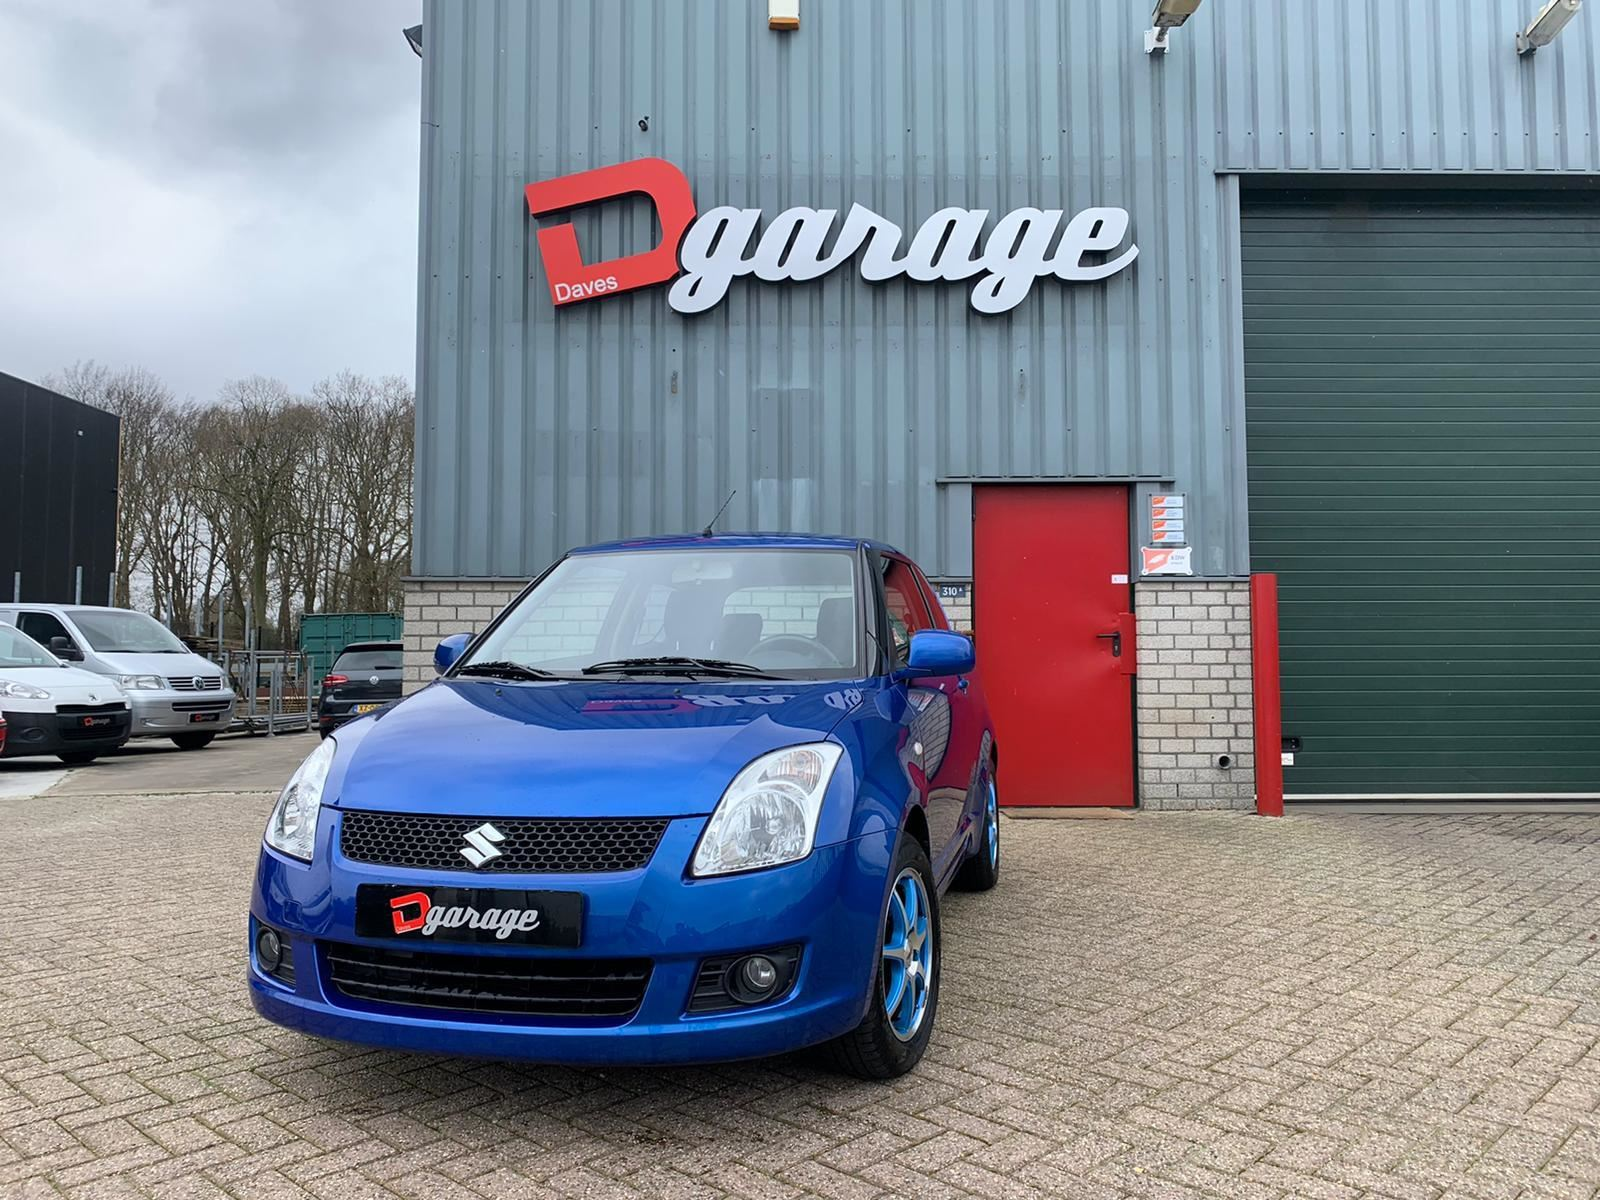 Suzuki Swift occasion - Dave's Garage